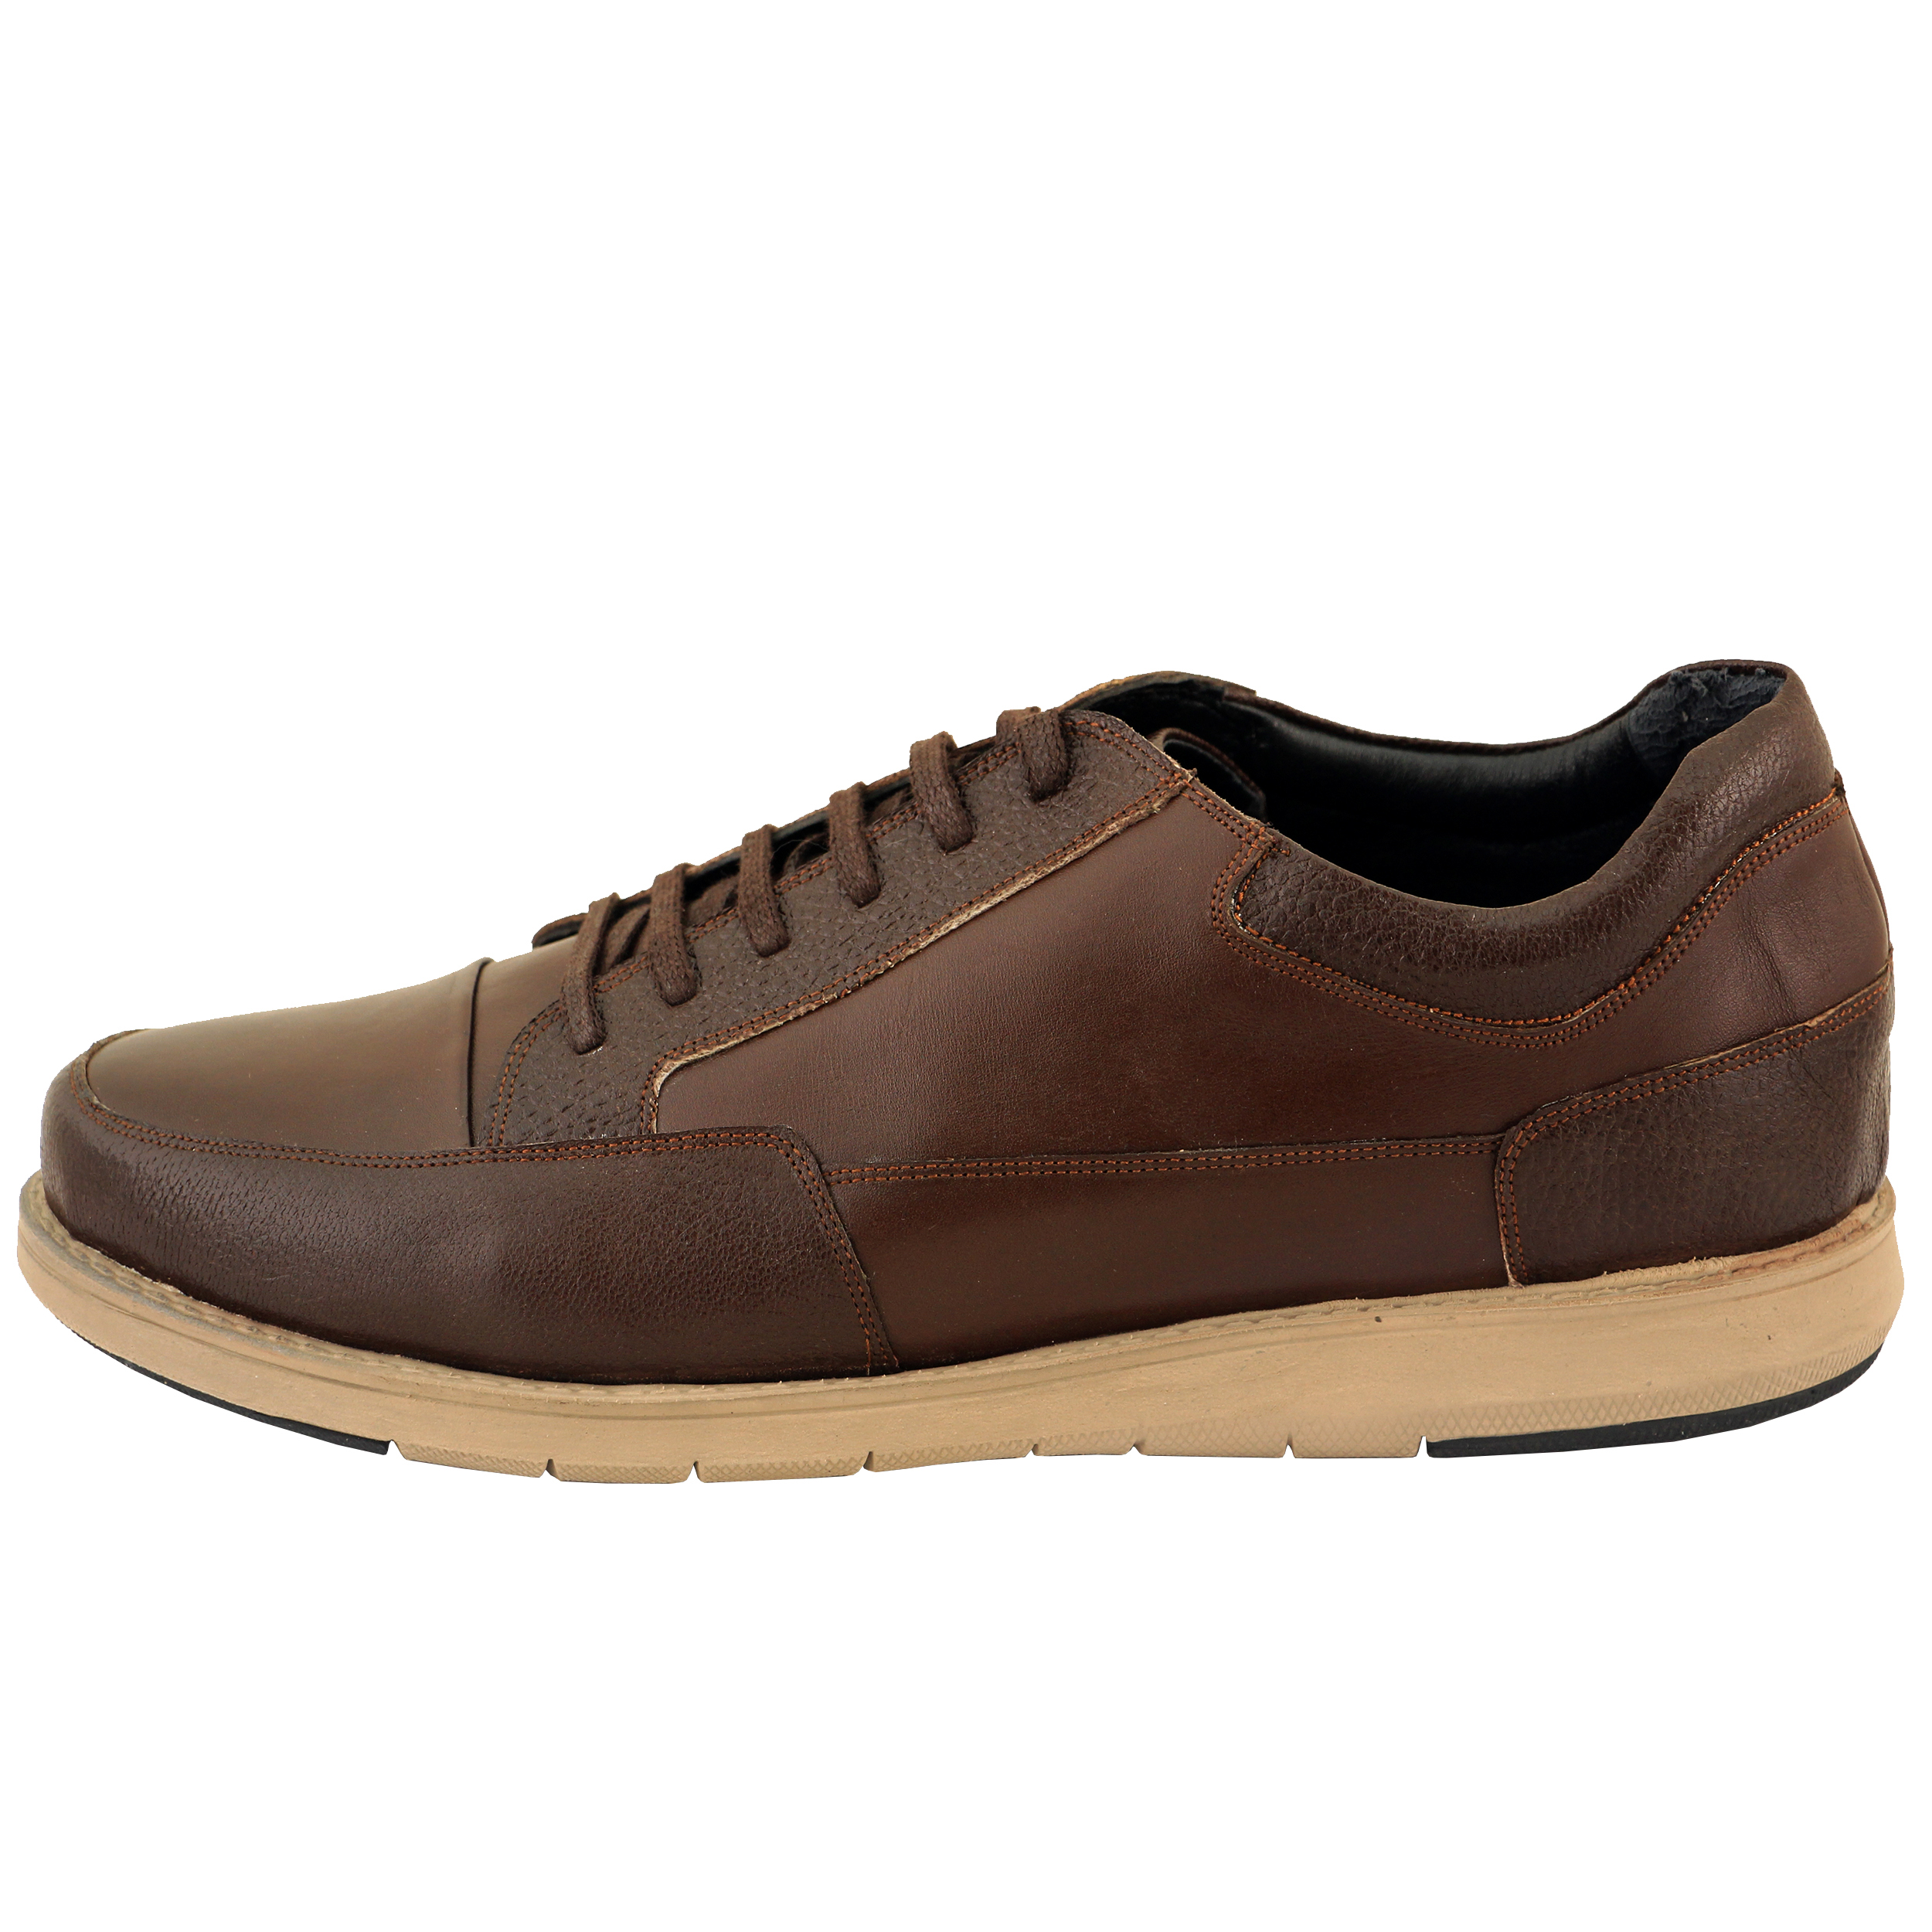 ADINCHARM leather men's casual shoes,DK103.qa Model